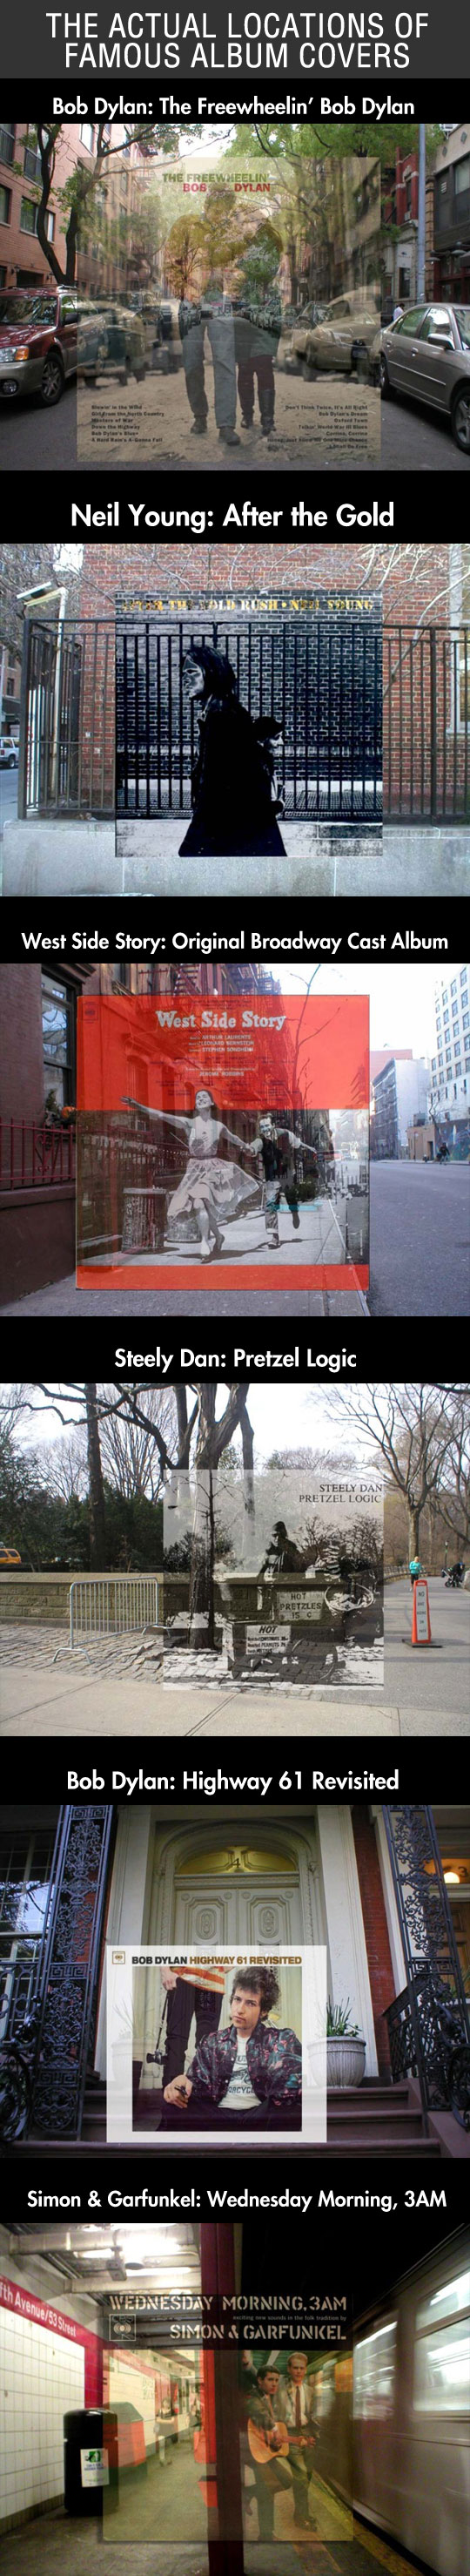 The Actual Locations Of Famous Album Covers